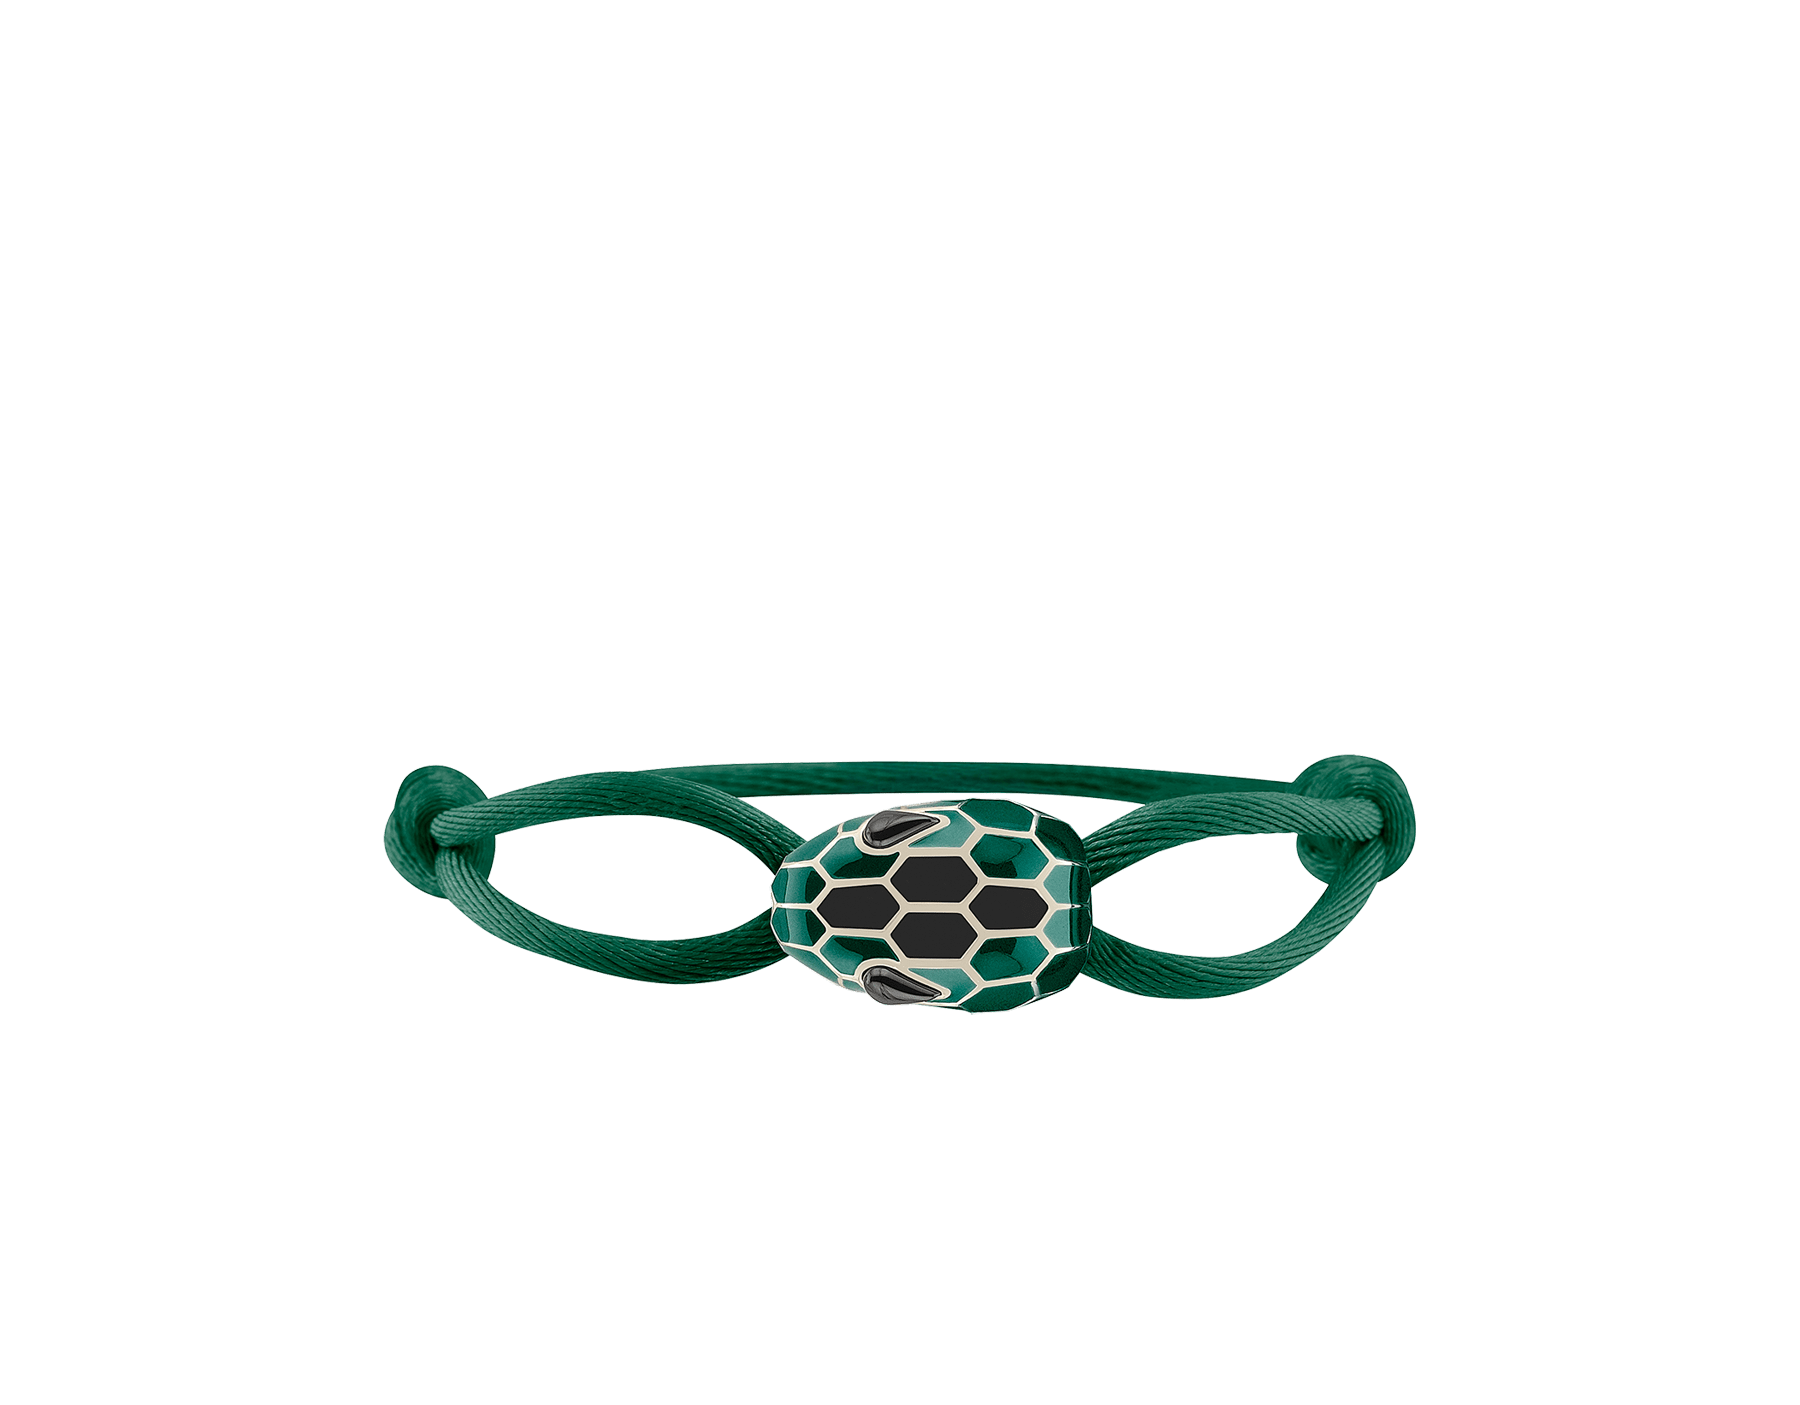 Serpenti Forever bracelet in emerald green fabric with an iconic snakehead décor in tone on tone and black enamel. 287822 image 1